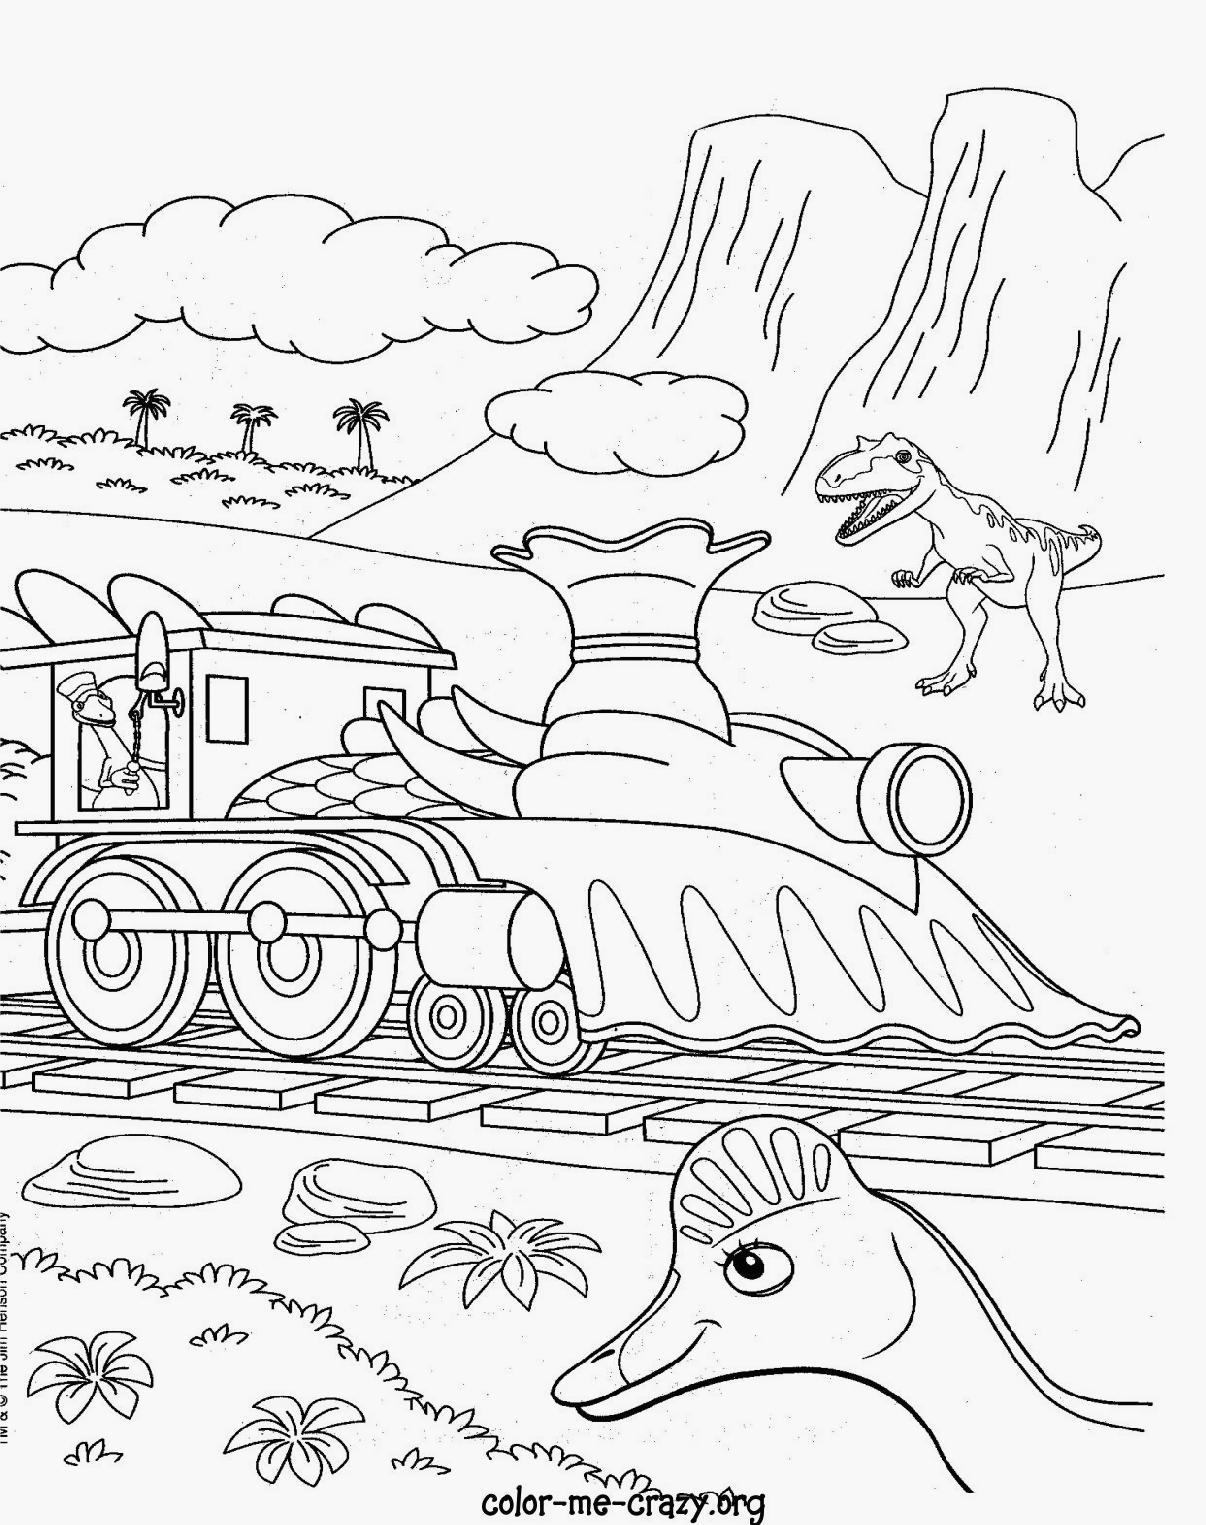 Train Coloring Pages Pdf At Getdrawings Com Free For Personal Use